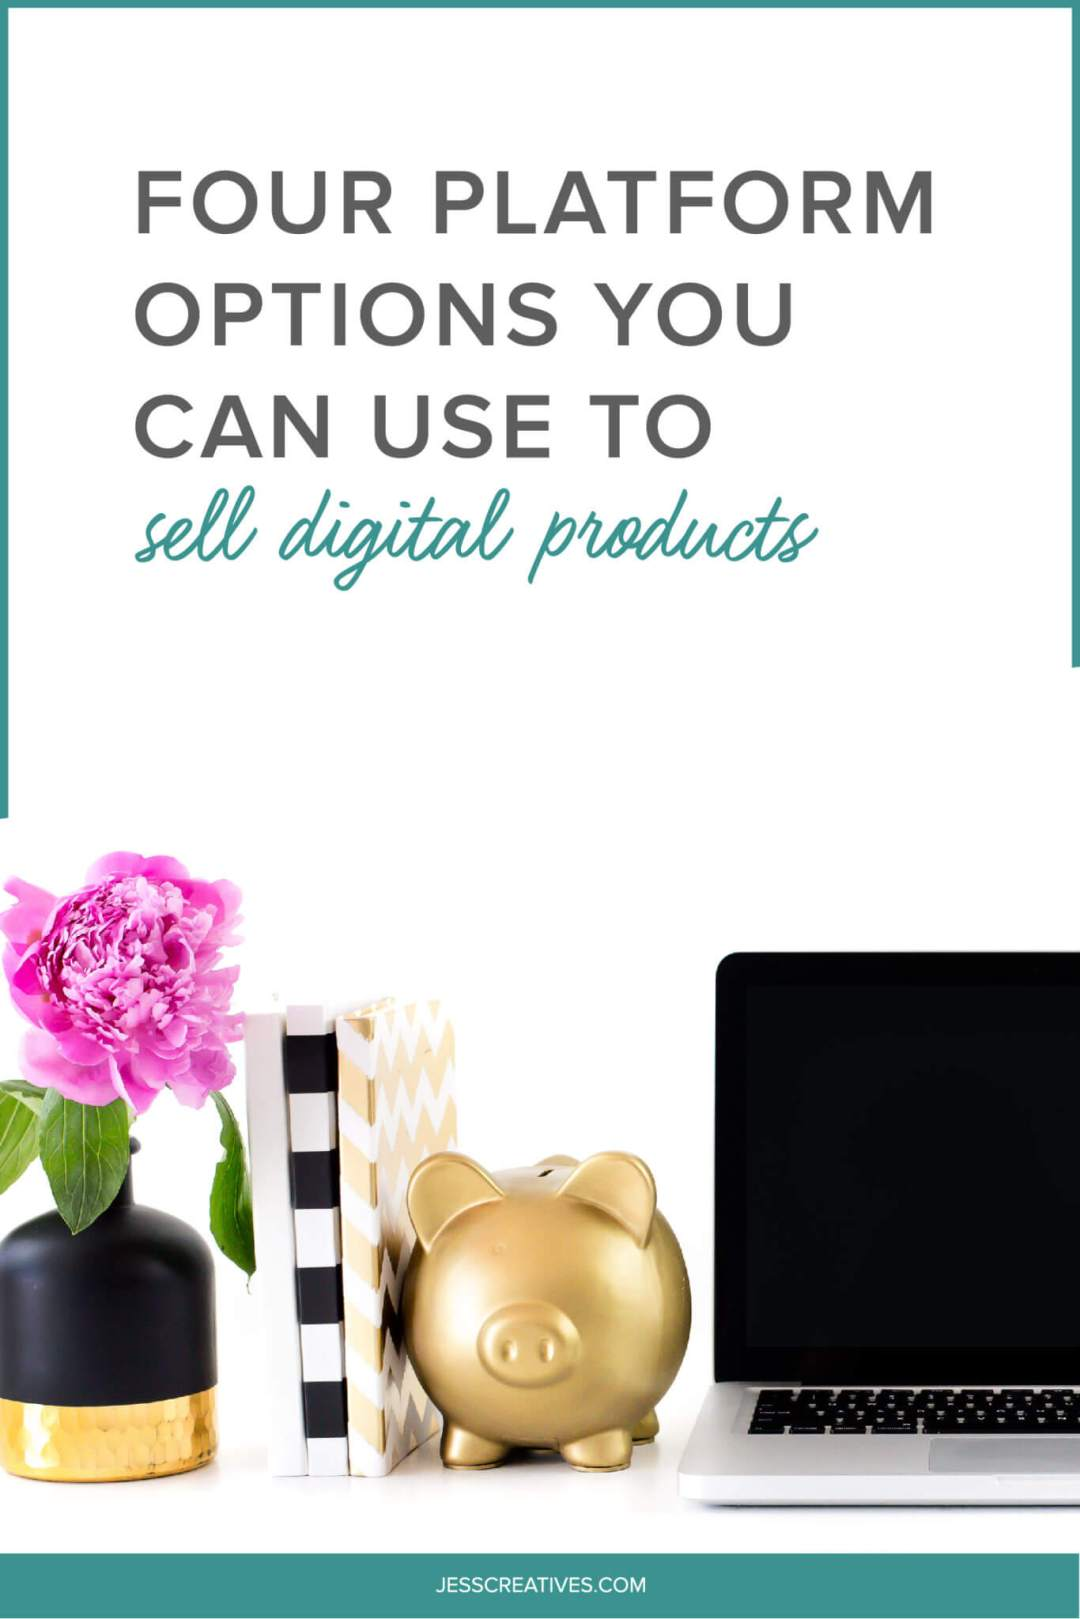 Four Platform Options You Can Use To Sell Digital Products